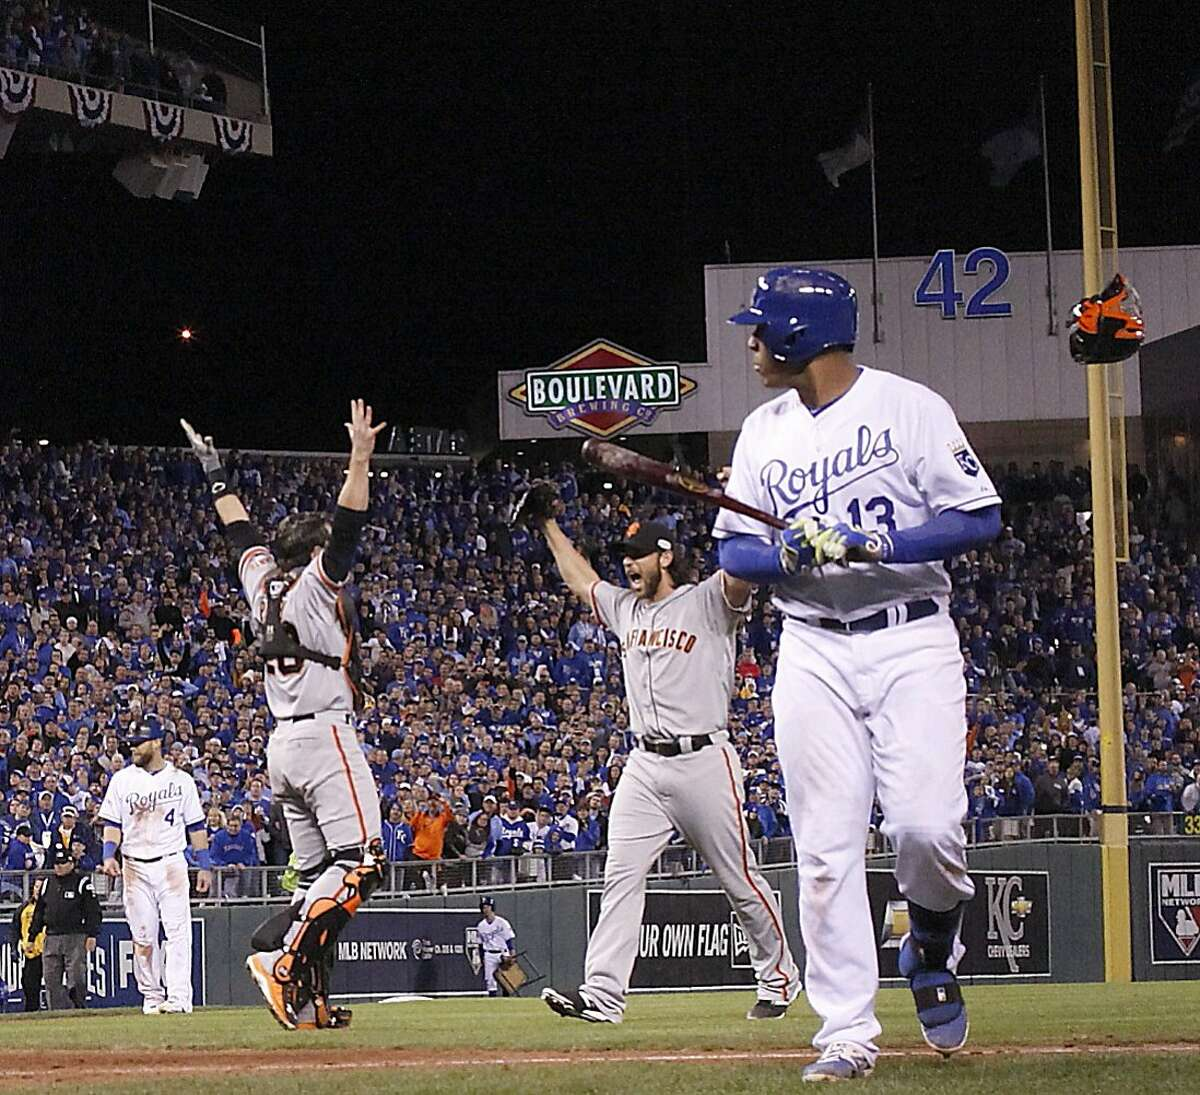 Giants Buster Posey and Madison Bumgarner celebrate the last out on a pop up by Royals Salvador Perez stranding the tying run on third base in Game 7 of the World Series at Kauffman Stadium on Wednesday, Oct. 29, 2014 in Kansas City, Mo.